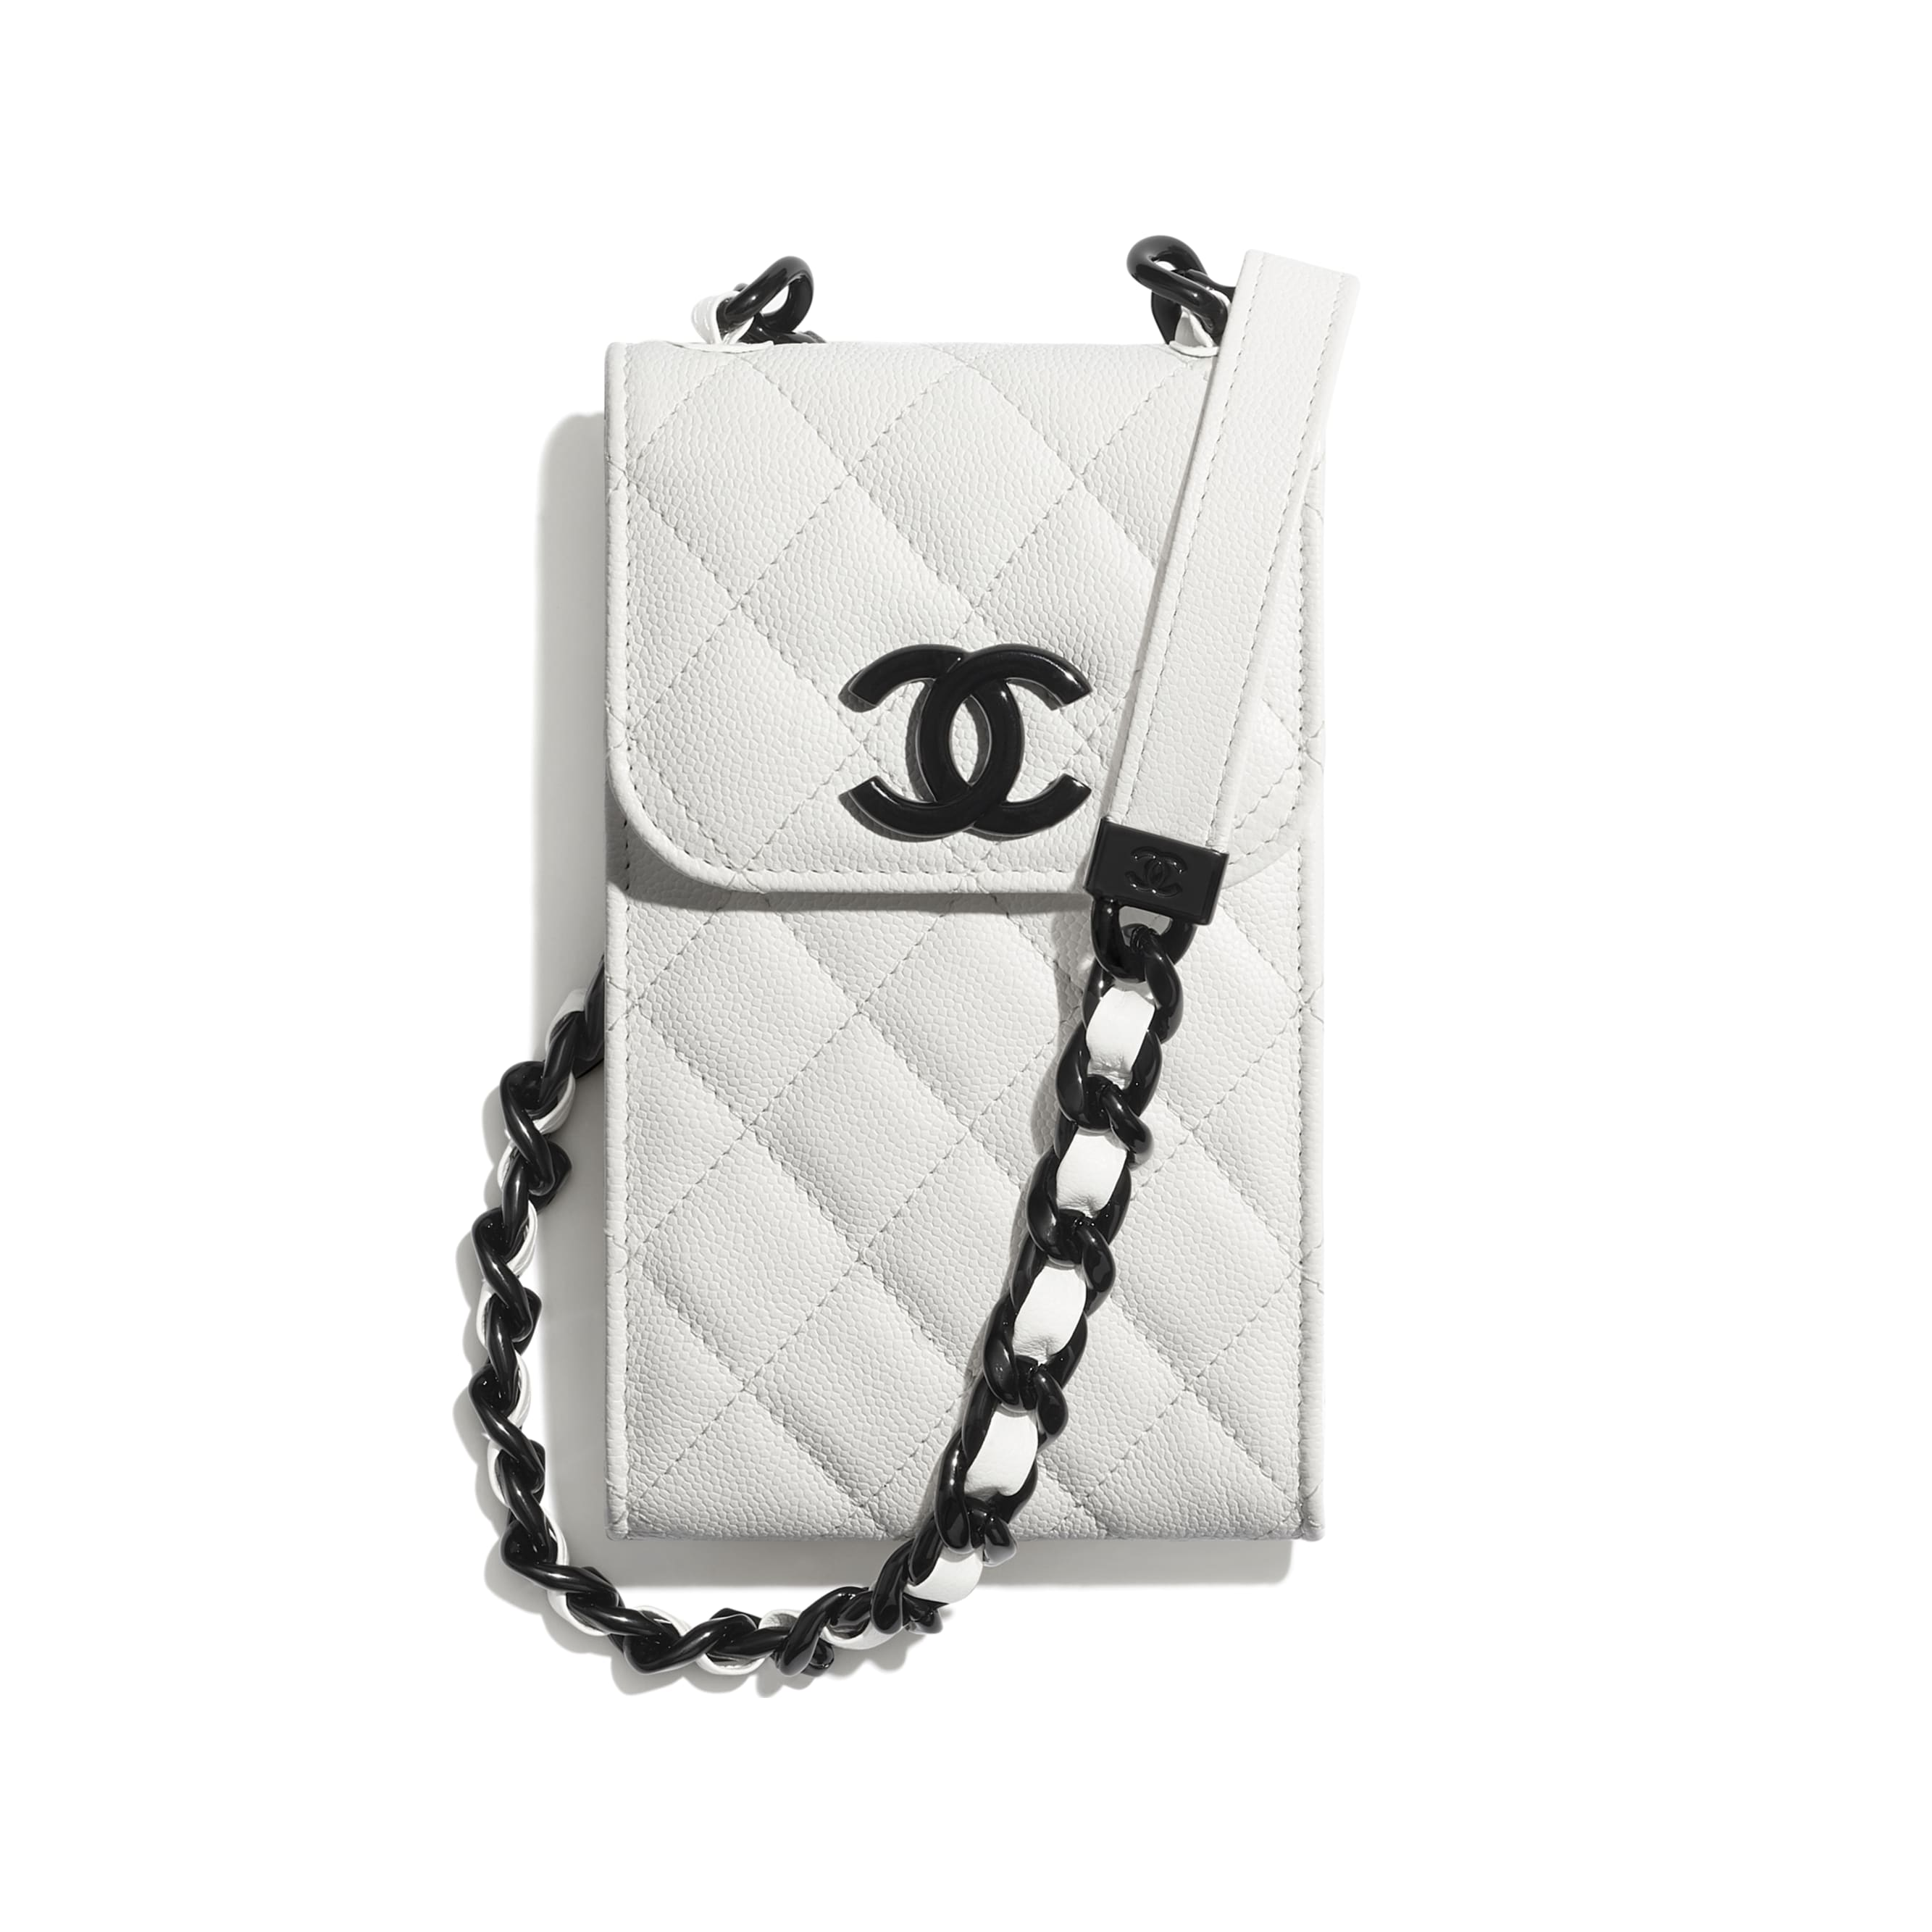 Clutch With Chain - White & Black - Grained Calfskin & Lacquered Metal - CHANEL - Default view - see standard sized version